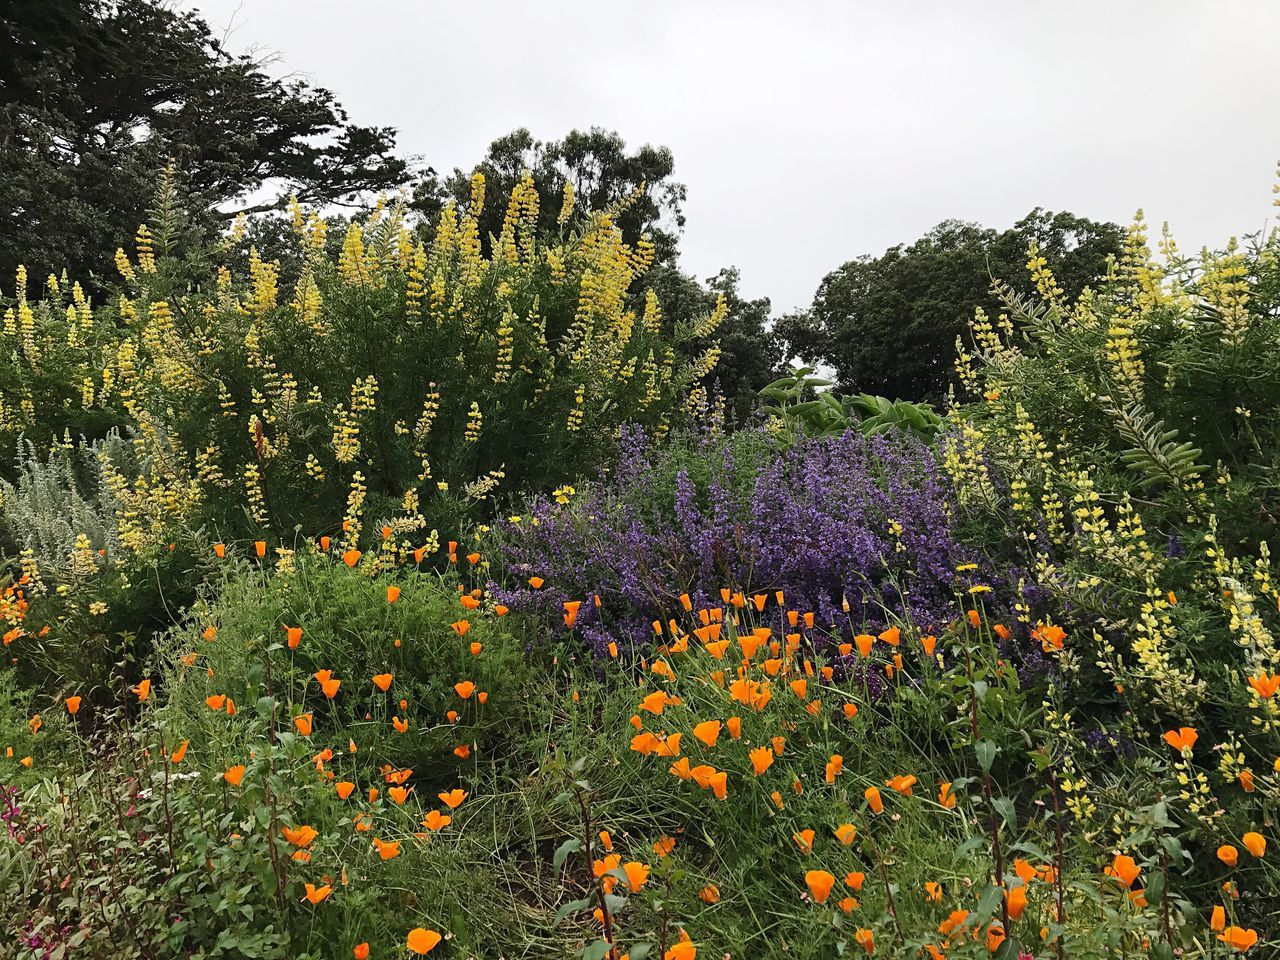 Growth Tree Nature Flower Beauty In Nature No People Plant Field Day Outdoors Sky Freshness Lupine California Poppies